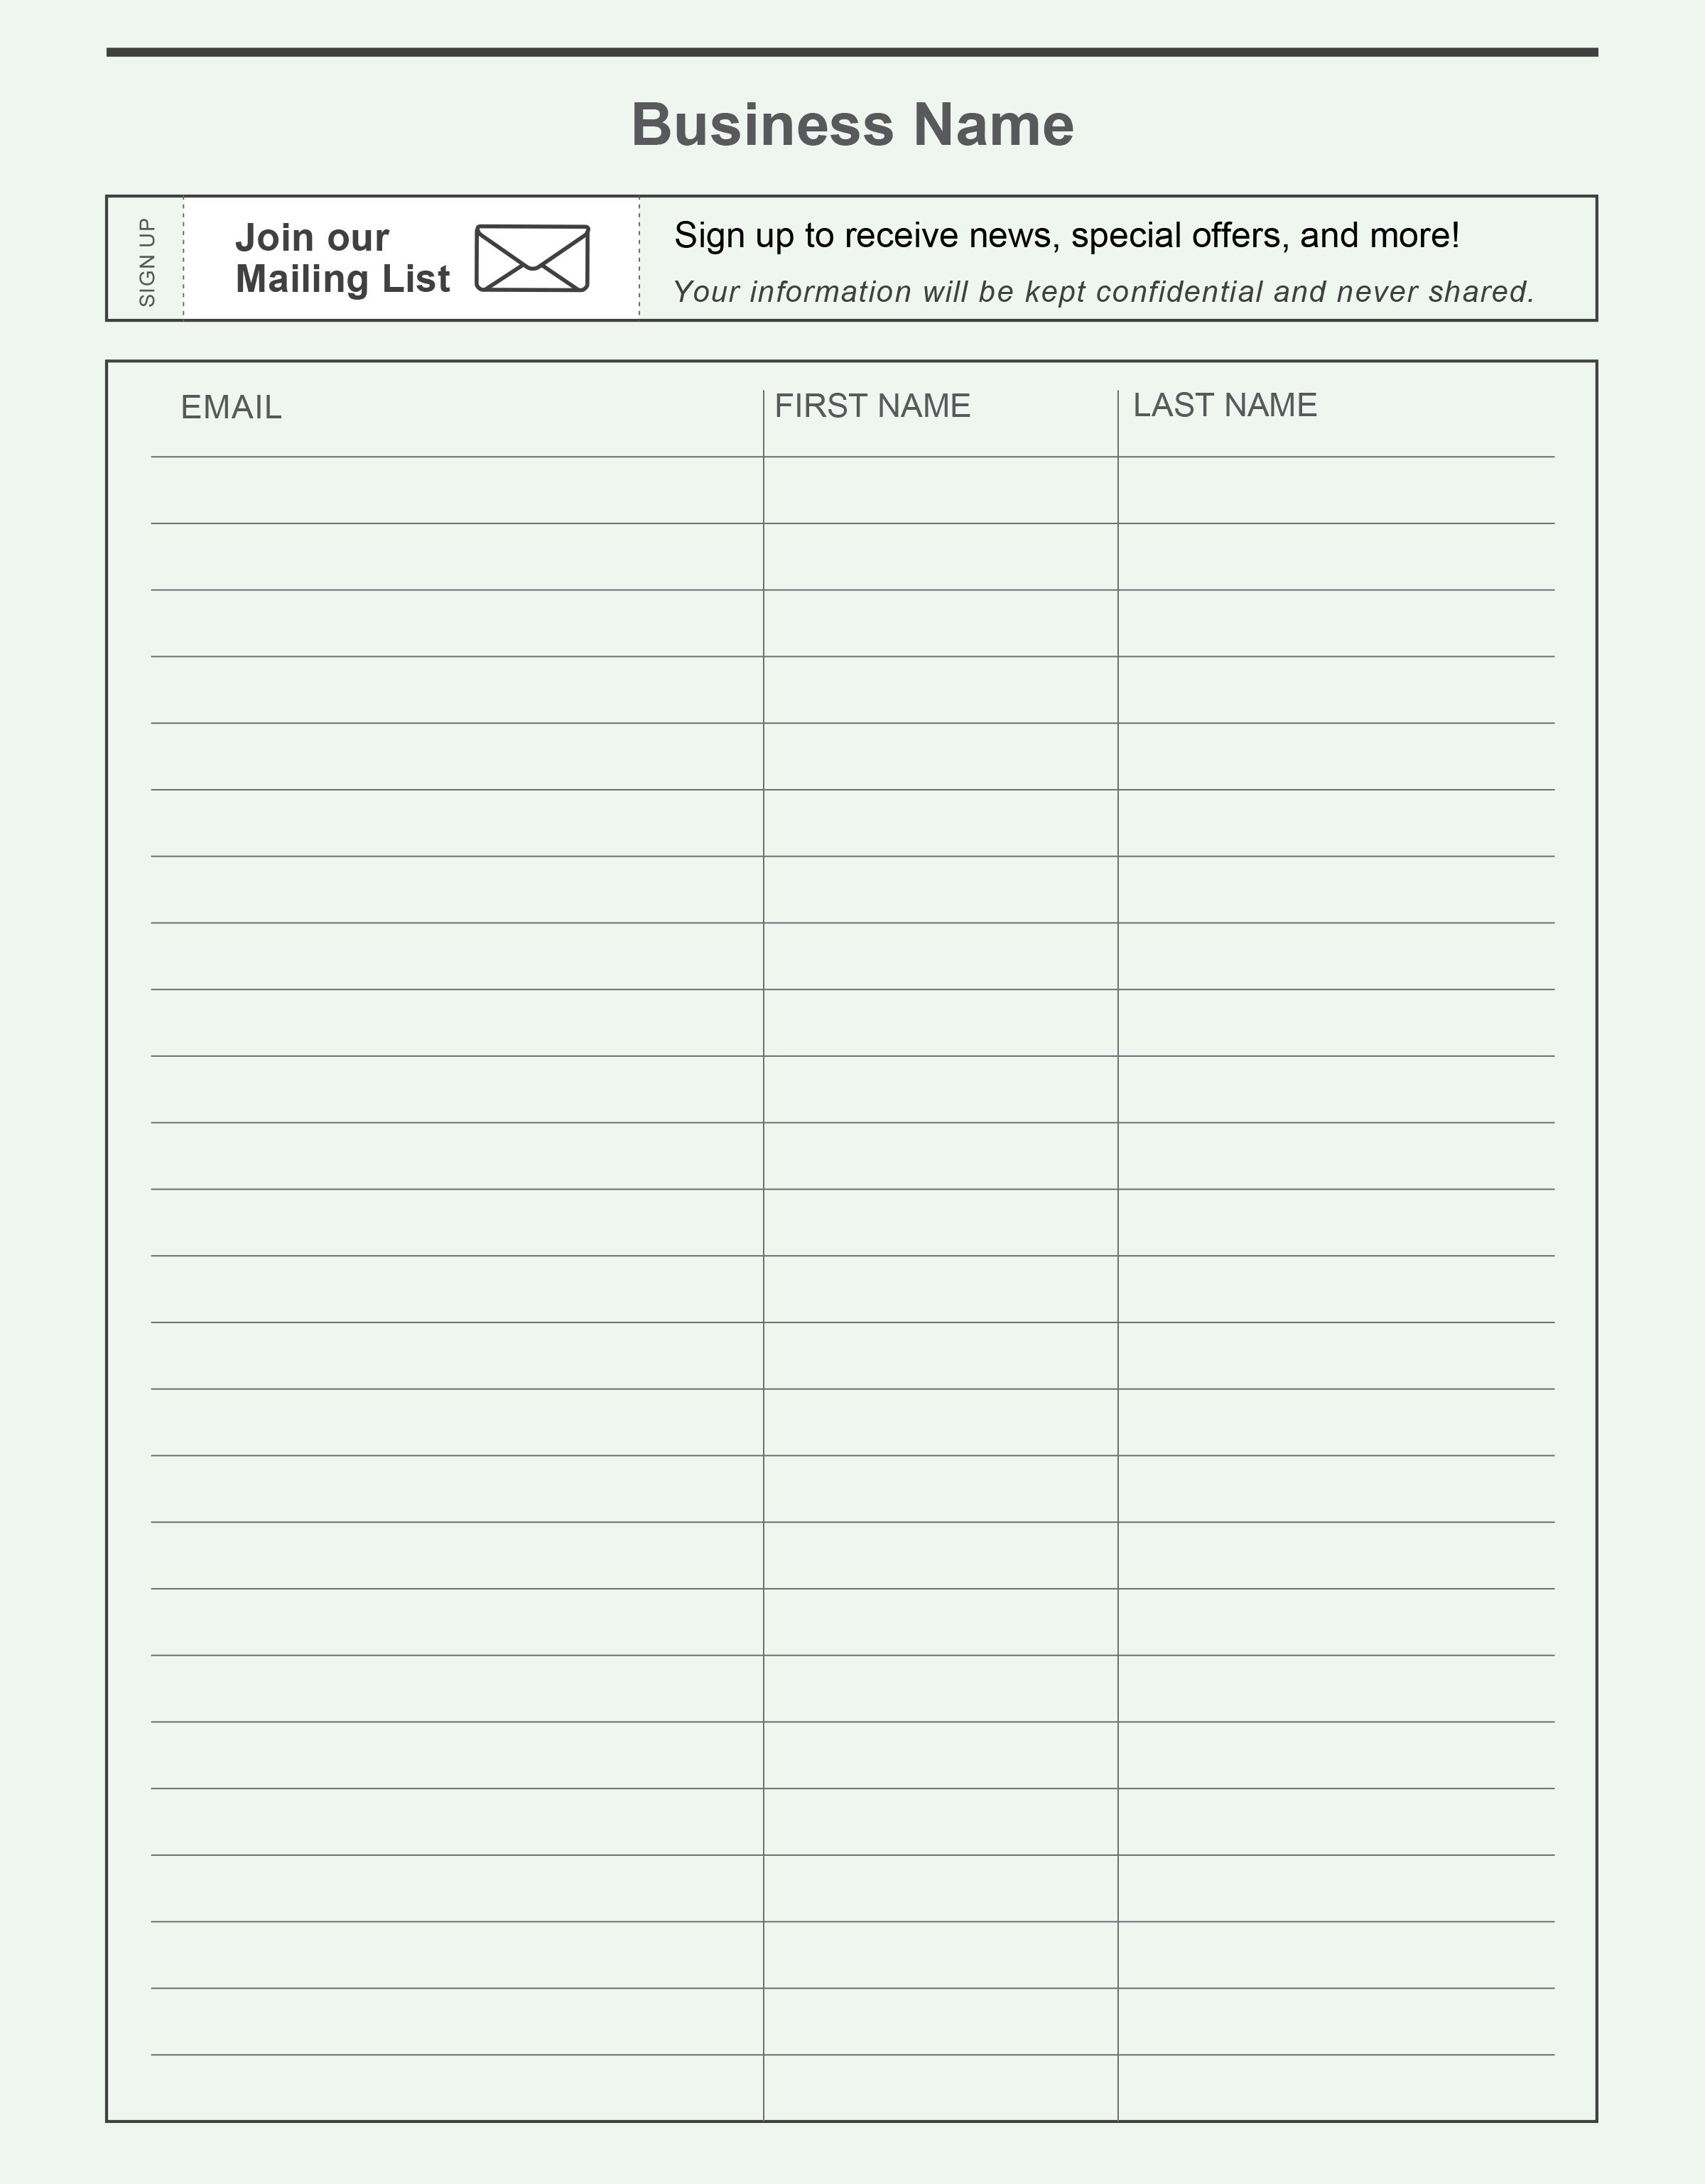 Pinconstant Contact On Grow Your Email List | List Template - Free Printable Sign Up Sheet